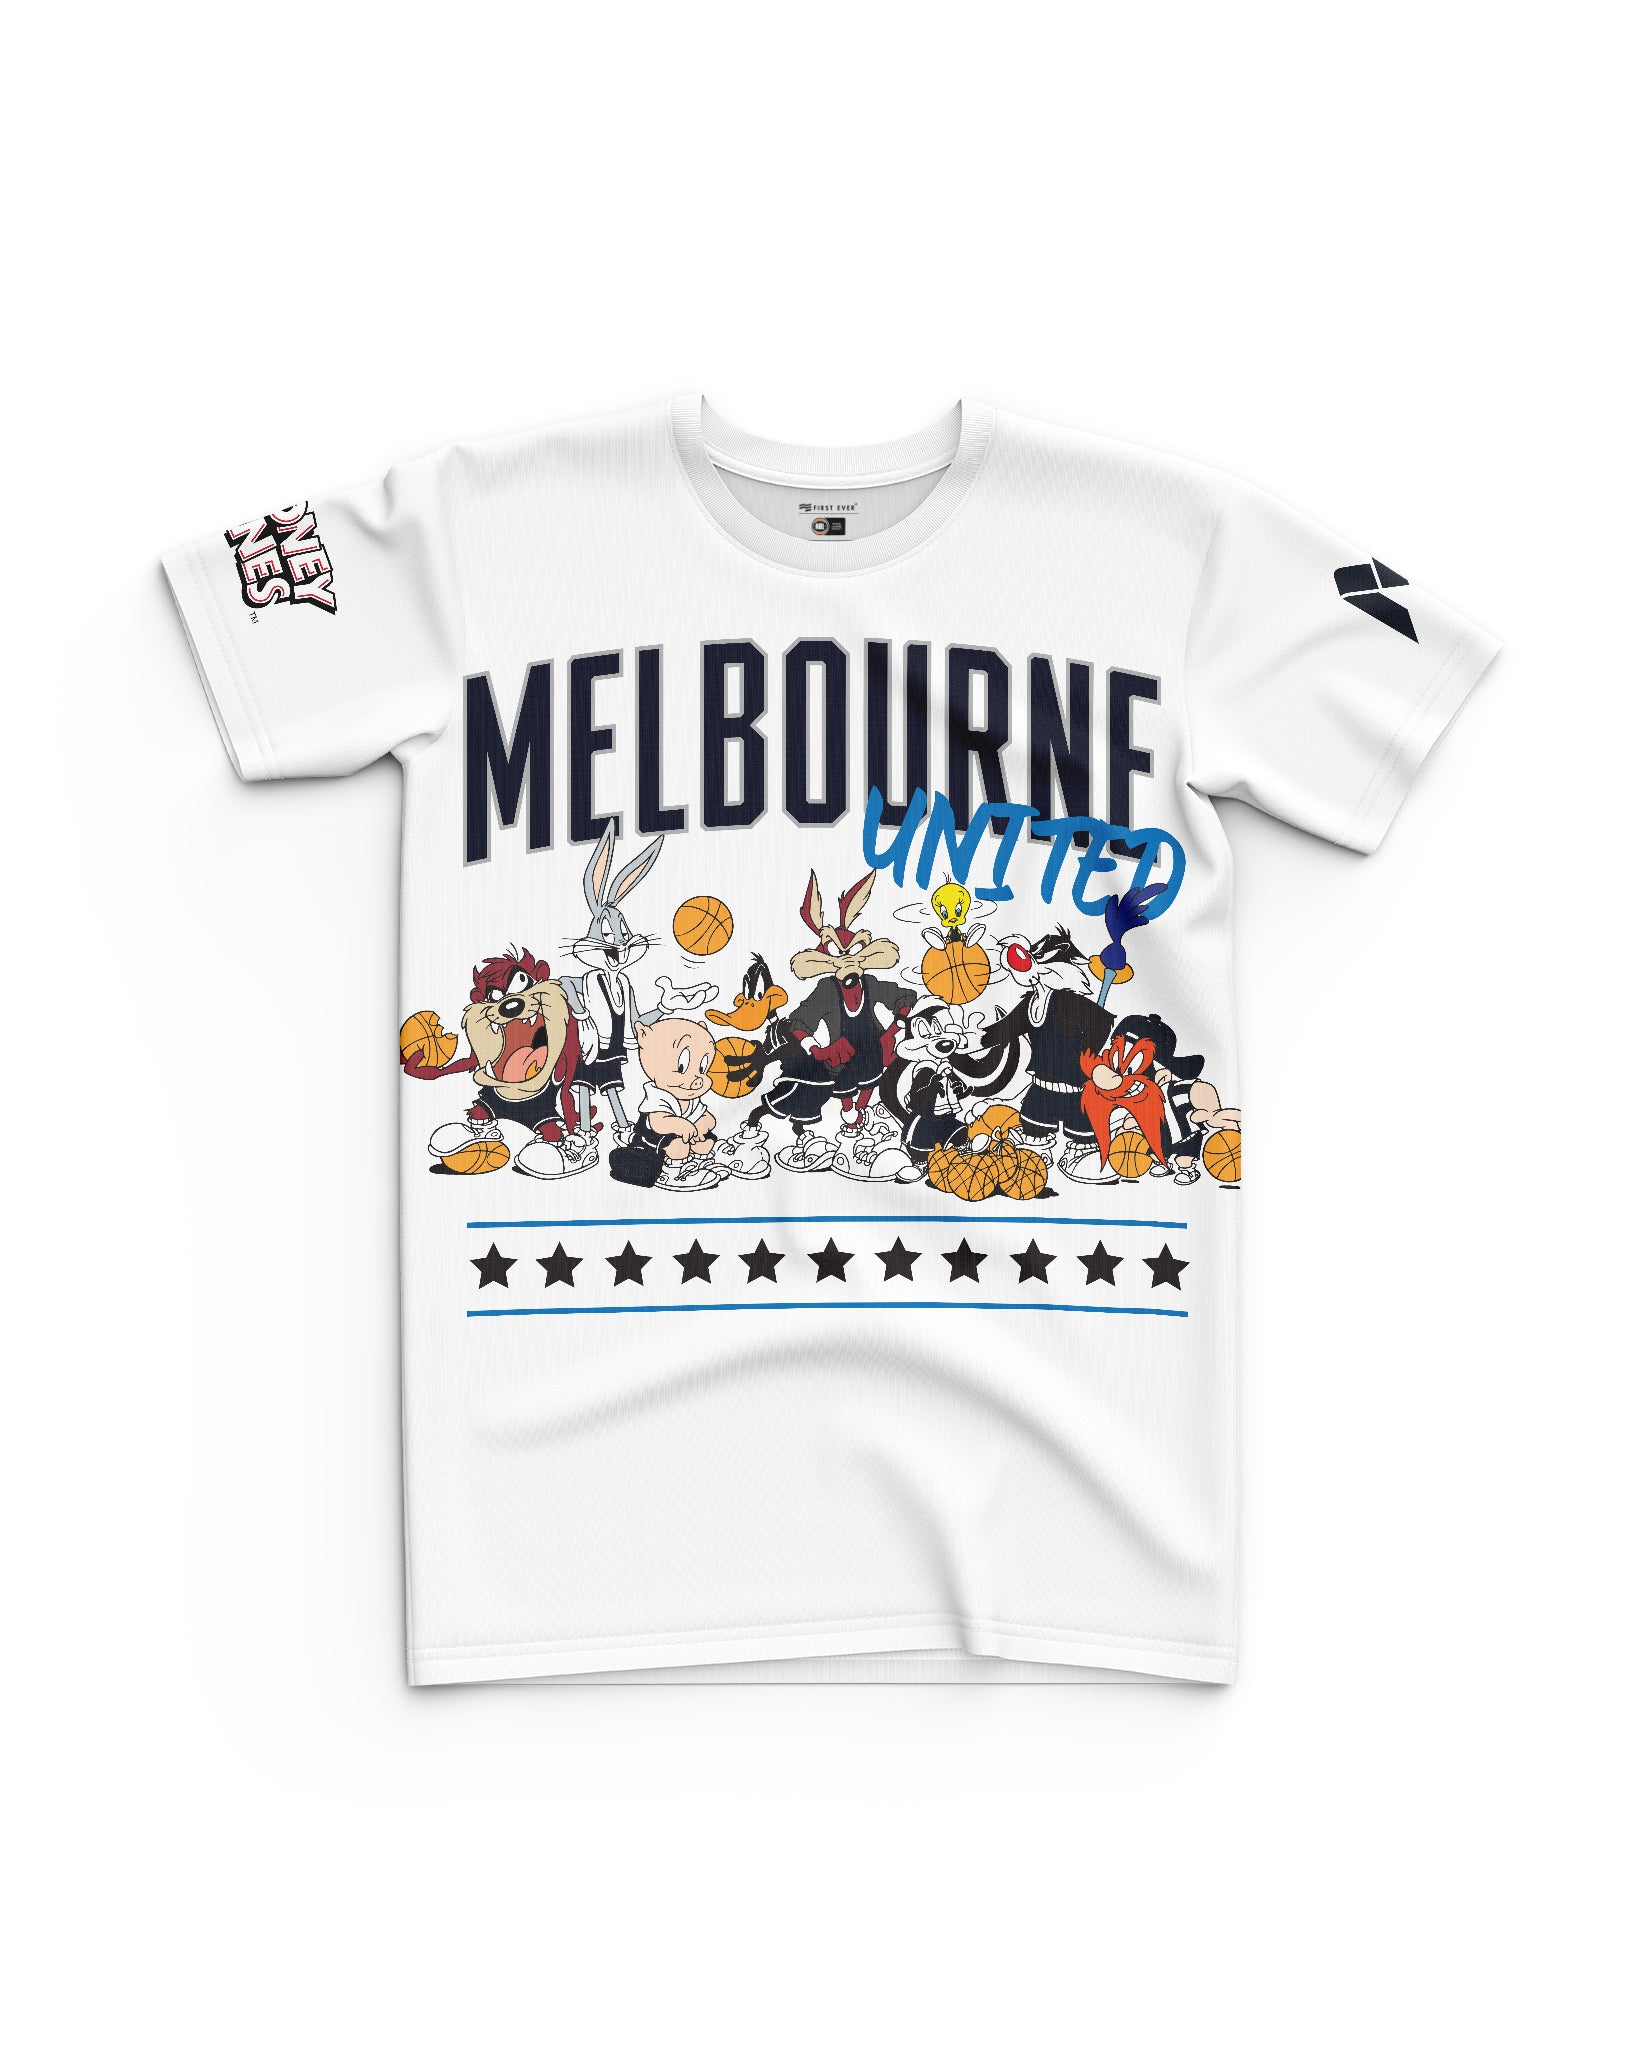 Melbourne United 20/21 Looney Tunes Youth Squad Tee